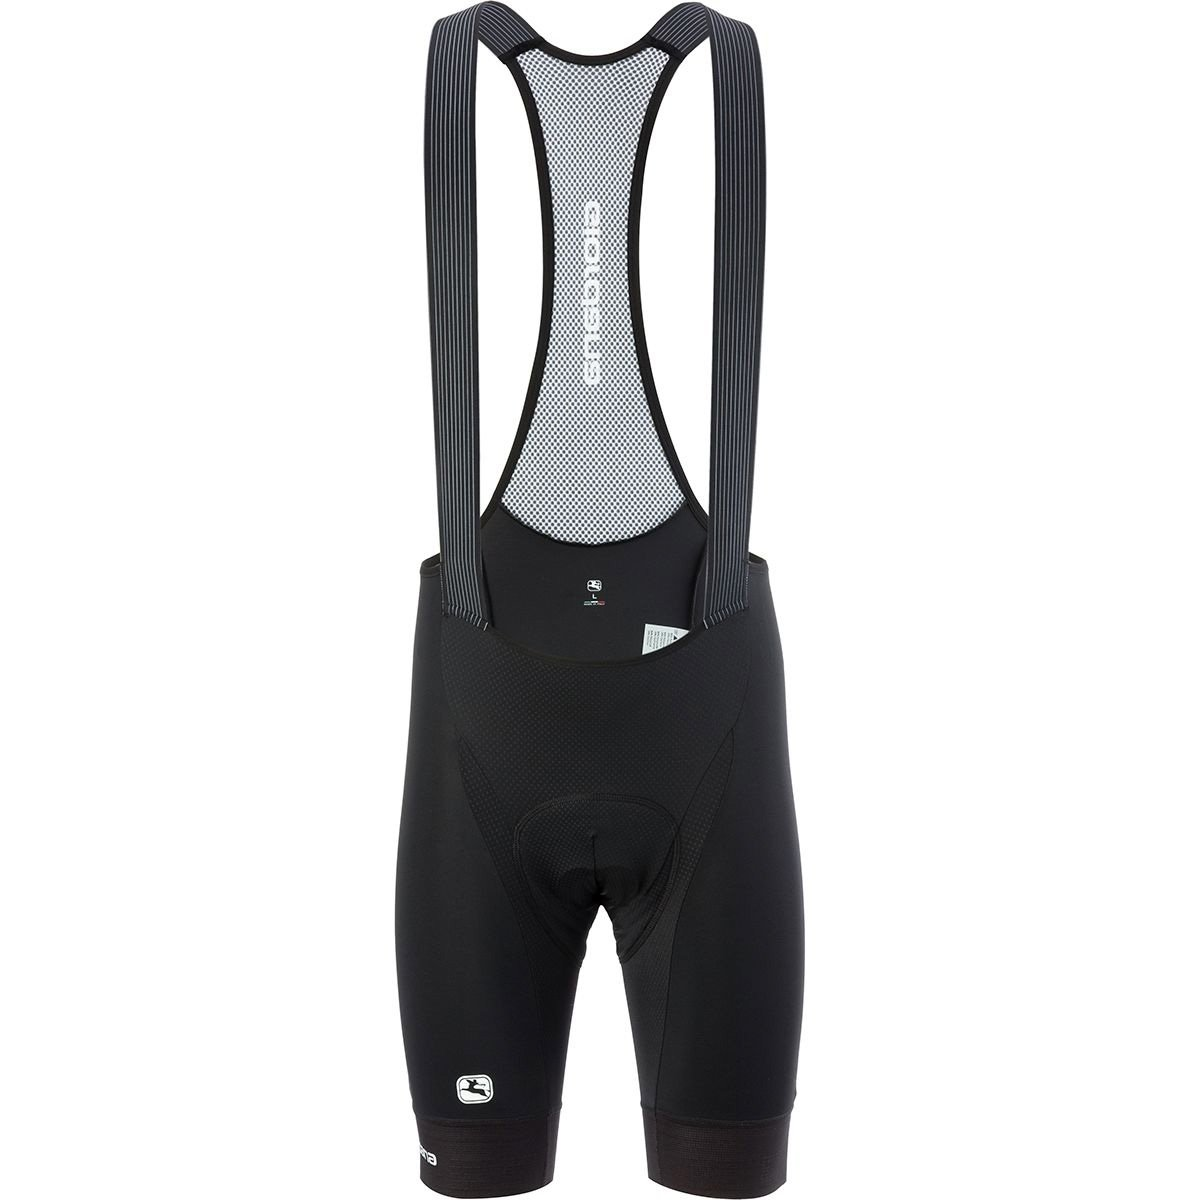 Giordana Moda Scatto Pro Bib Short – Men 's Medium ブラック/ホワイト B078X3GFGK